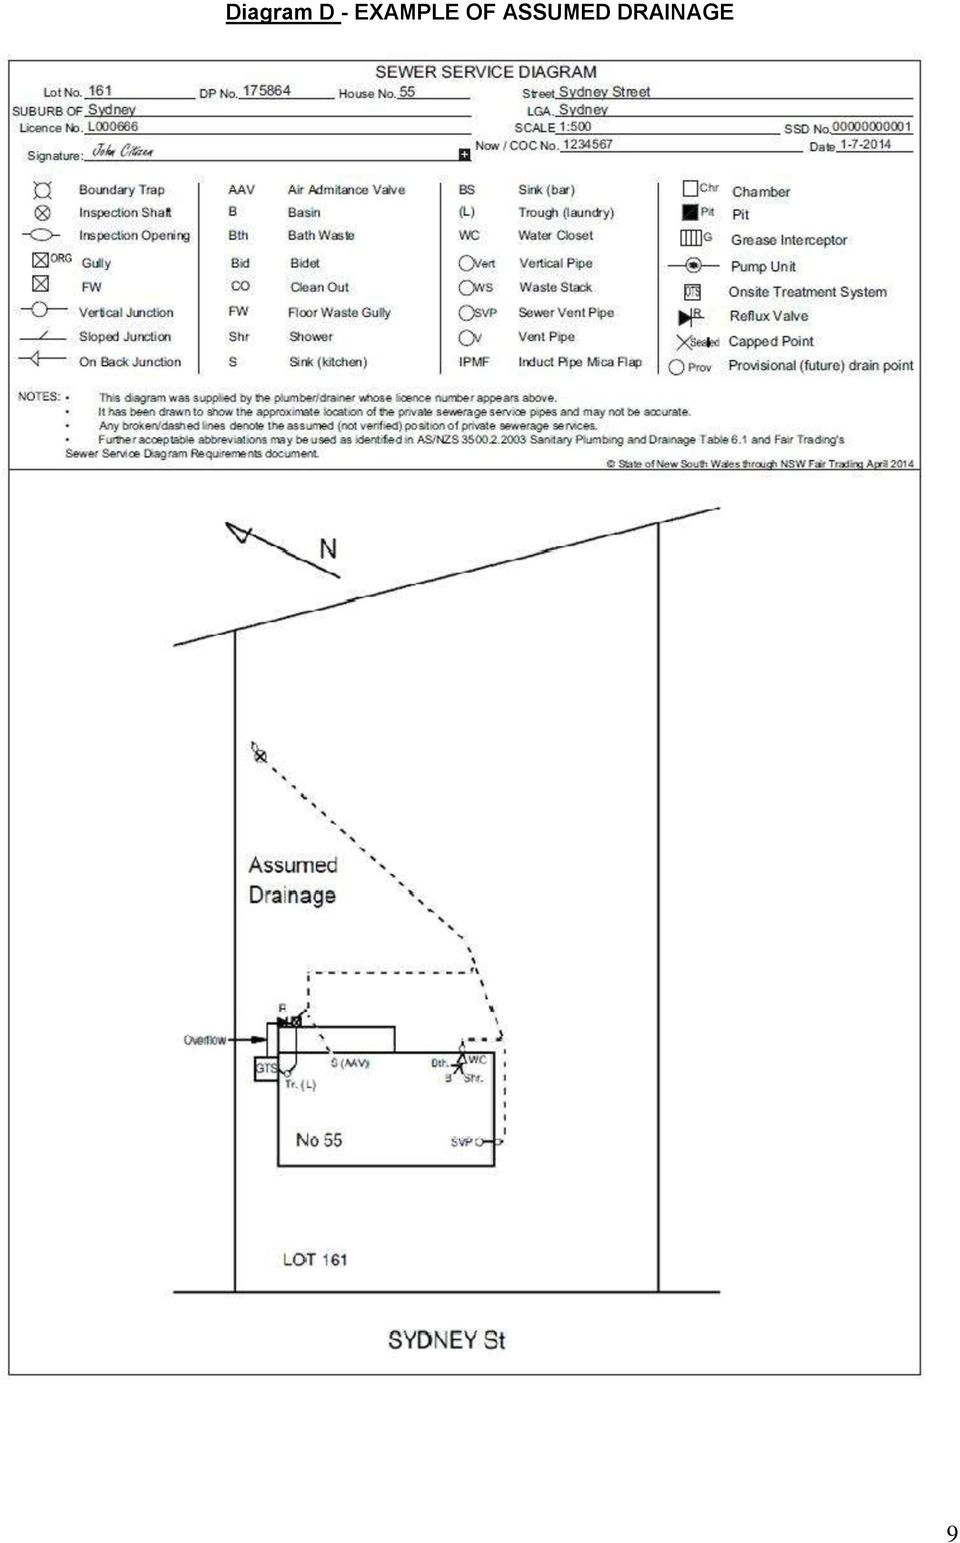 Sewer Service Diagram (SSD) Requirements - PDF